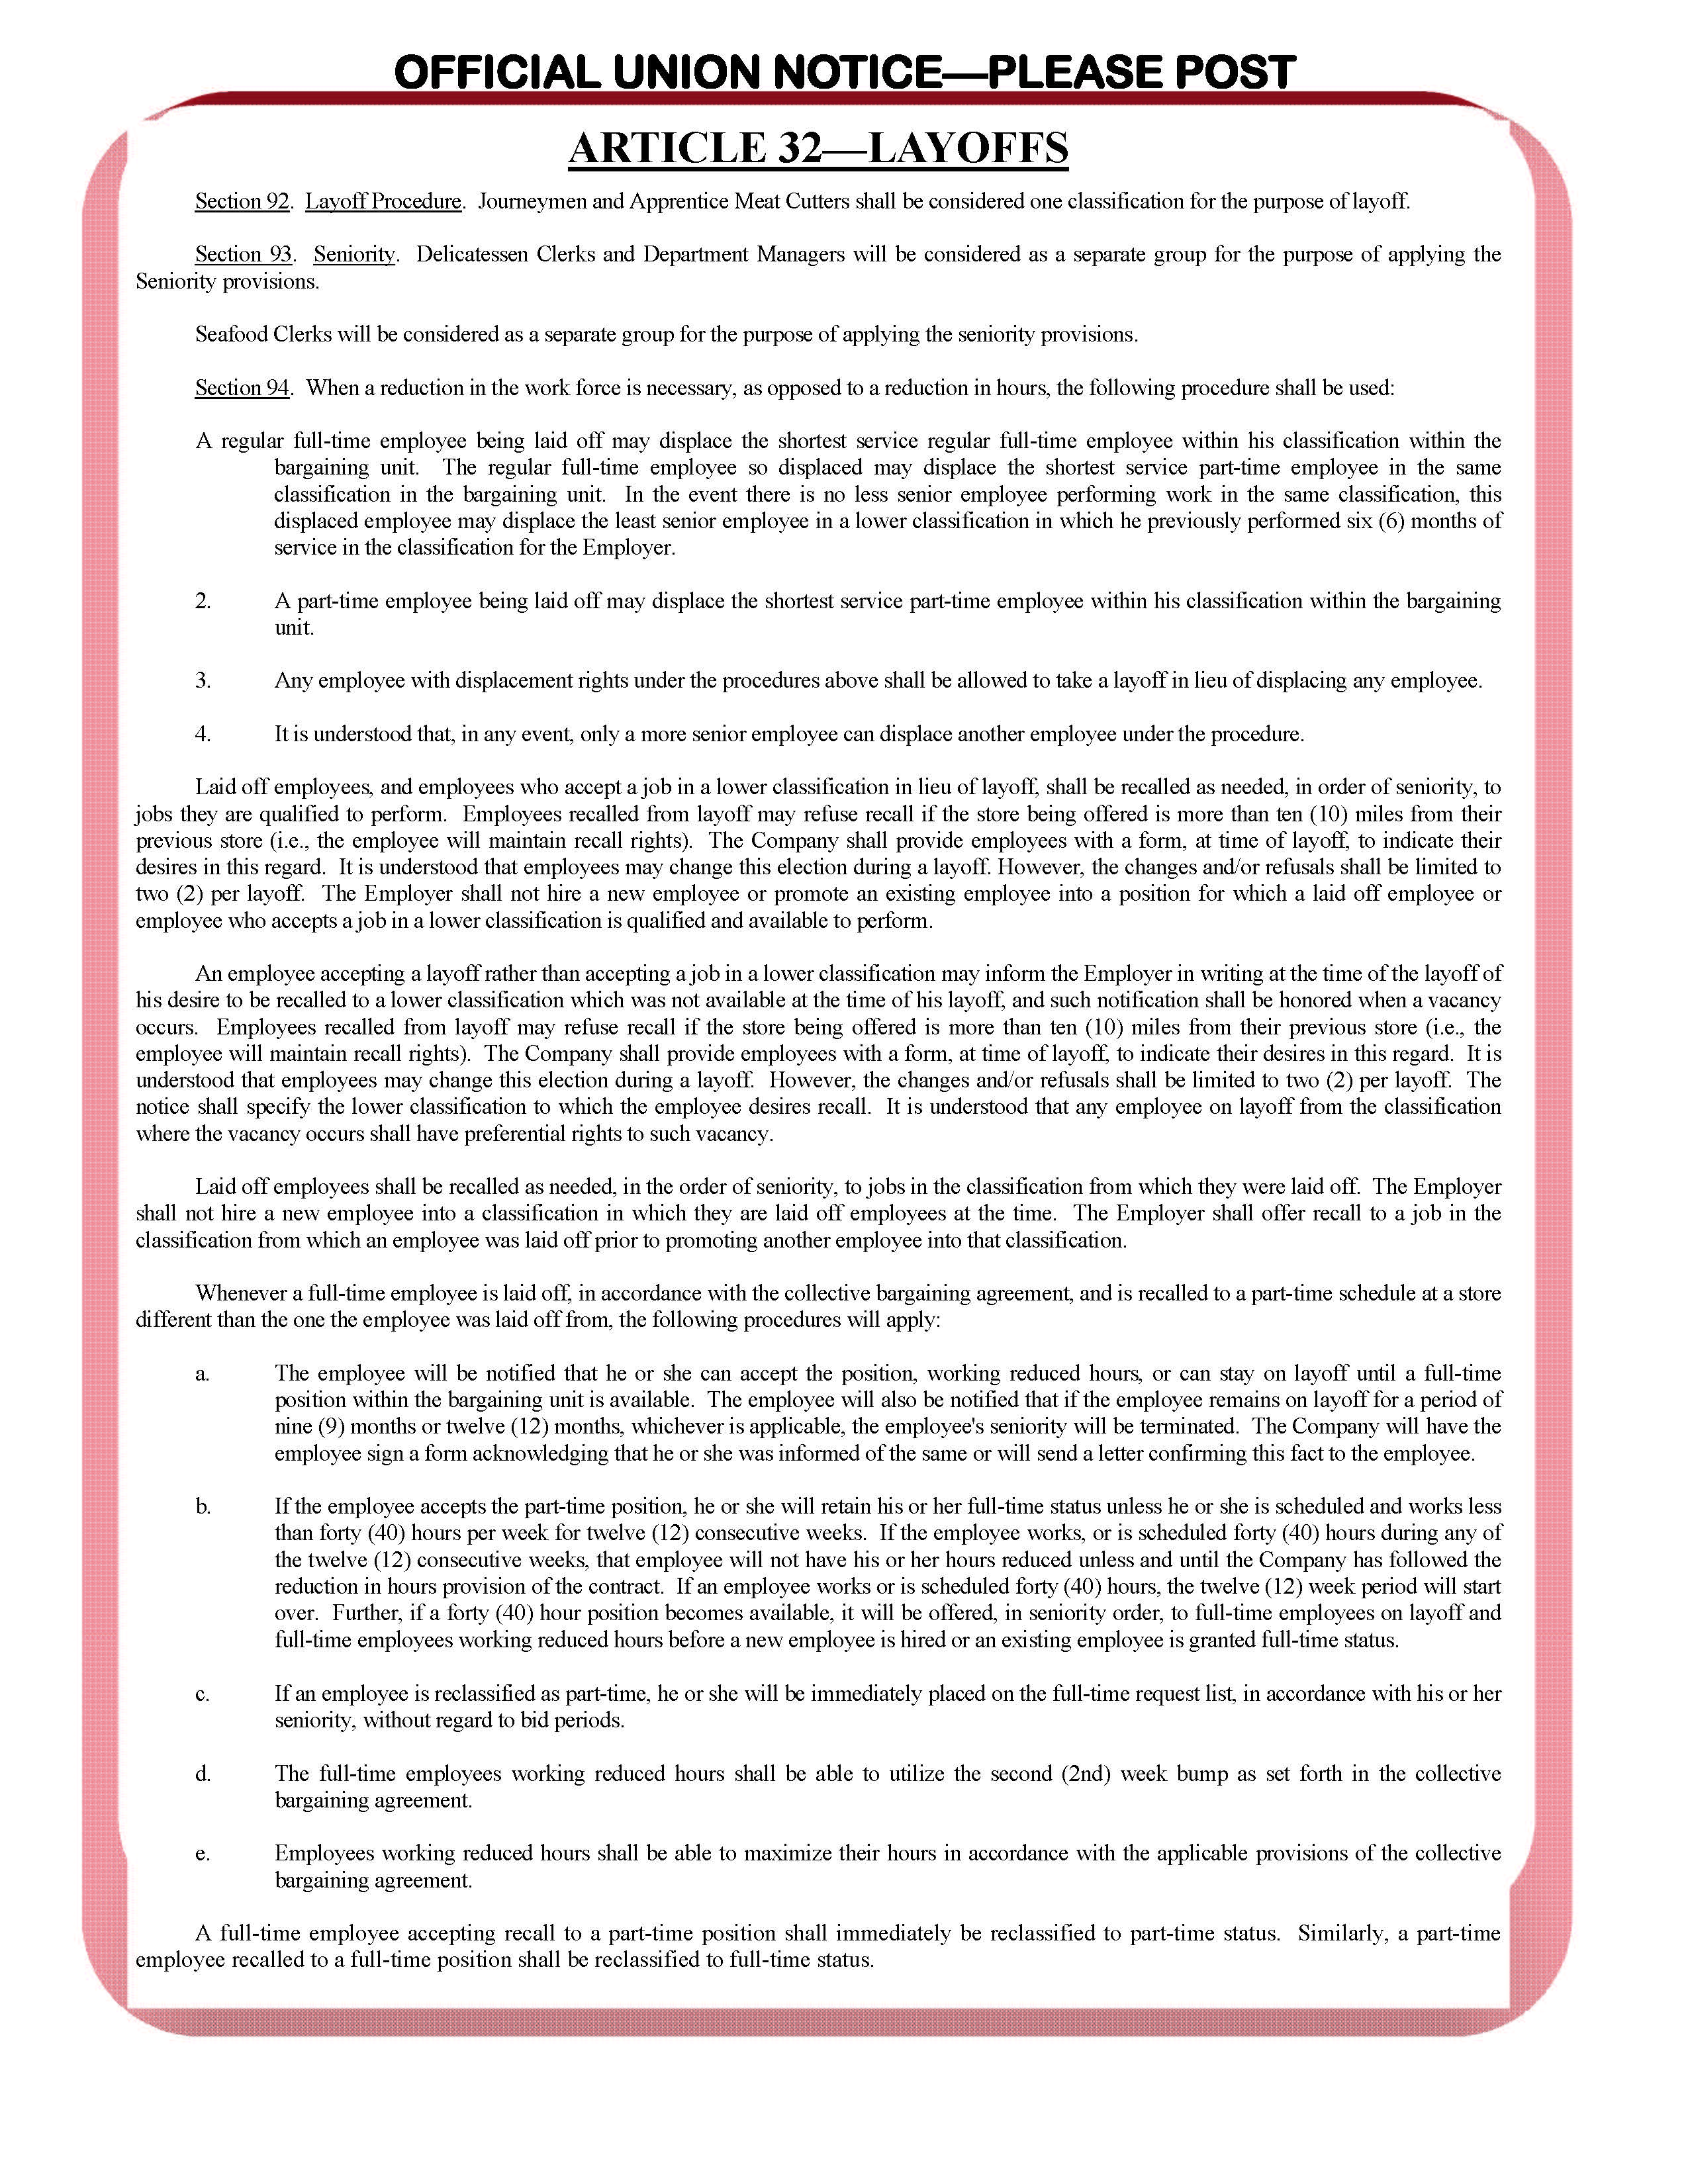 evaluation of safeway co Safeway however, only one page of the form was completed and it was not signed on july 6, 2015,  to its evaluation of coverage because [thomas] did not.